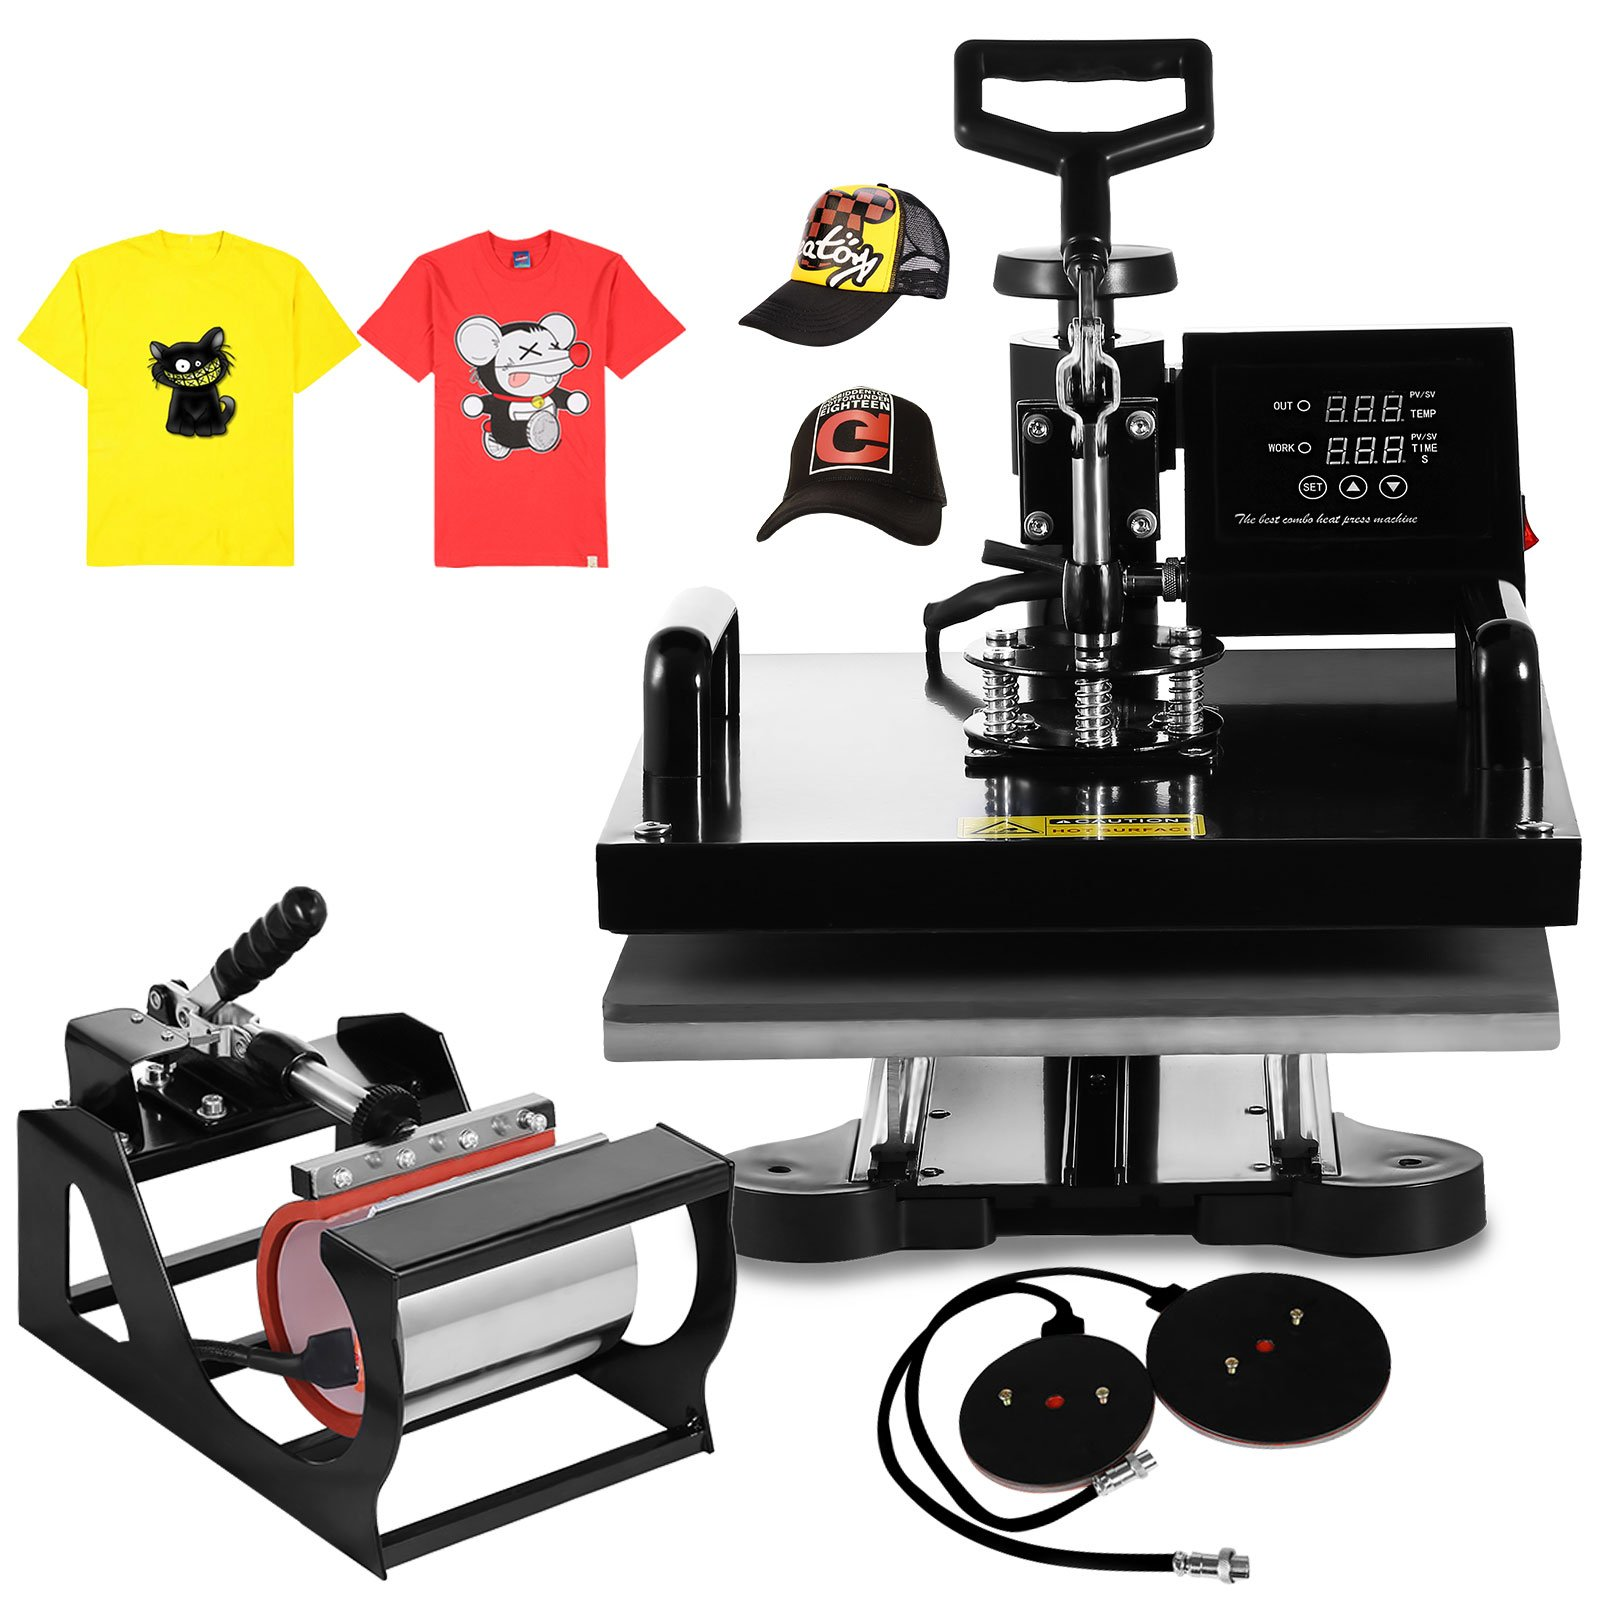 Happybuy 5 in 1 15'' X 15'' Heat Press 360 Degree Swing-away Heat Press Machine Multifunction Sublimation Combo T Shirt Press Machine for Mug Hat Plate Cap Mouse Pad (5 in 1 15'' X 15'') by Happybuy